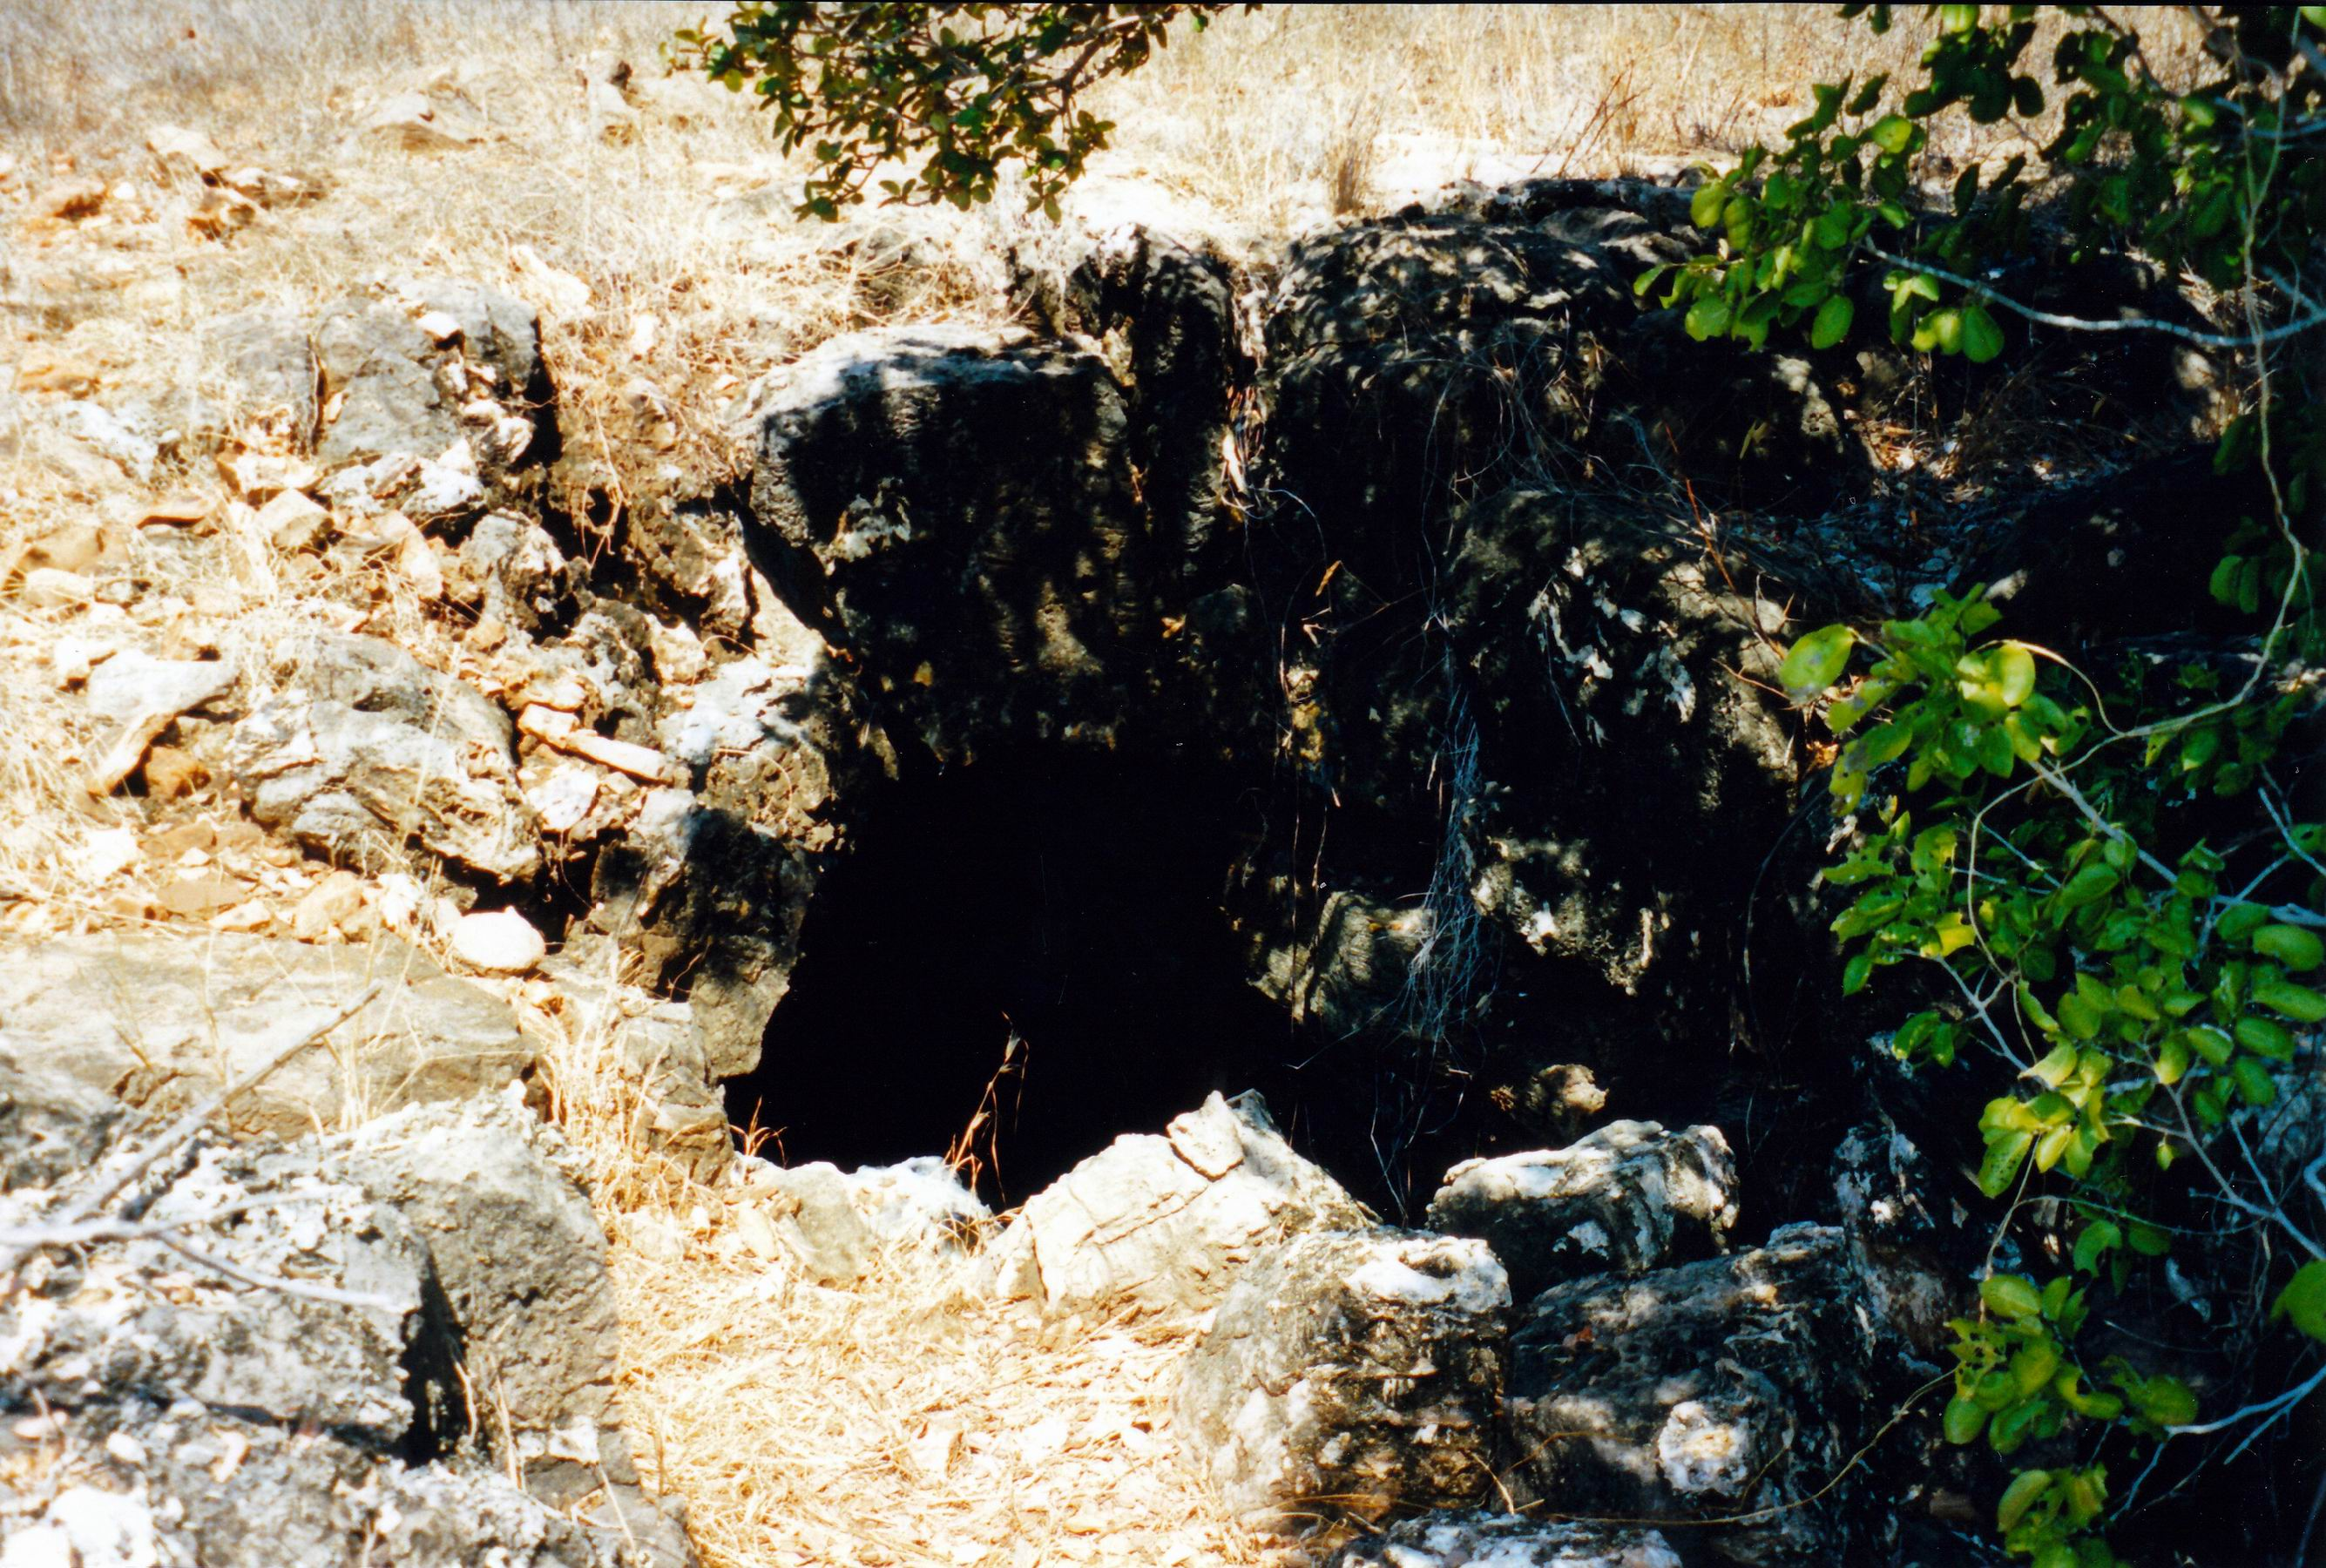 Resize of 09-19-2003 23 entry to big cave.jpg